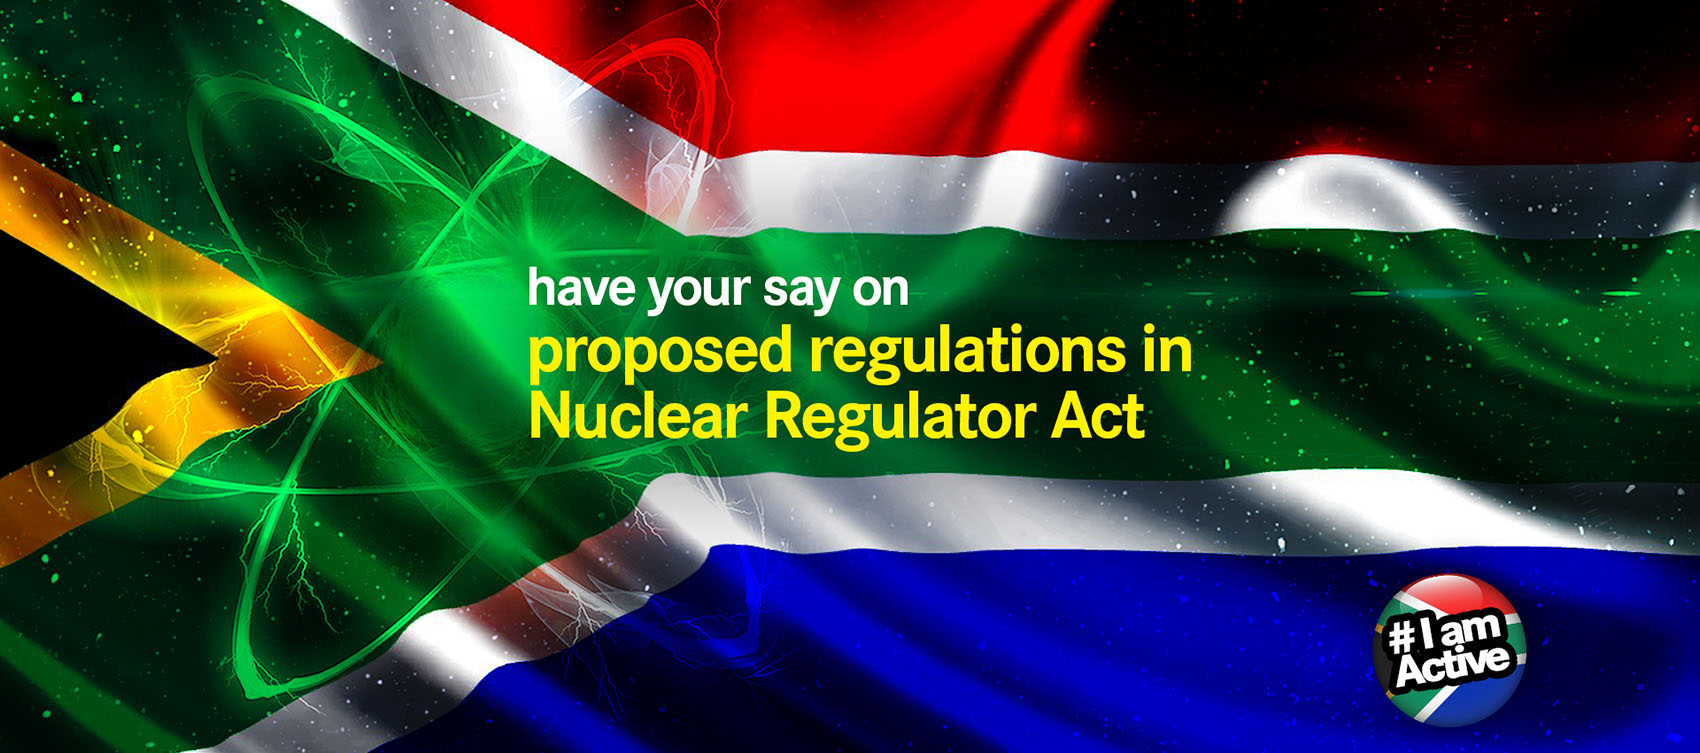 nuclear-regulations-DearSA